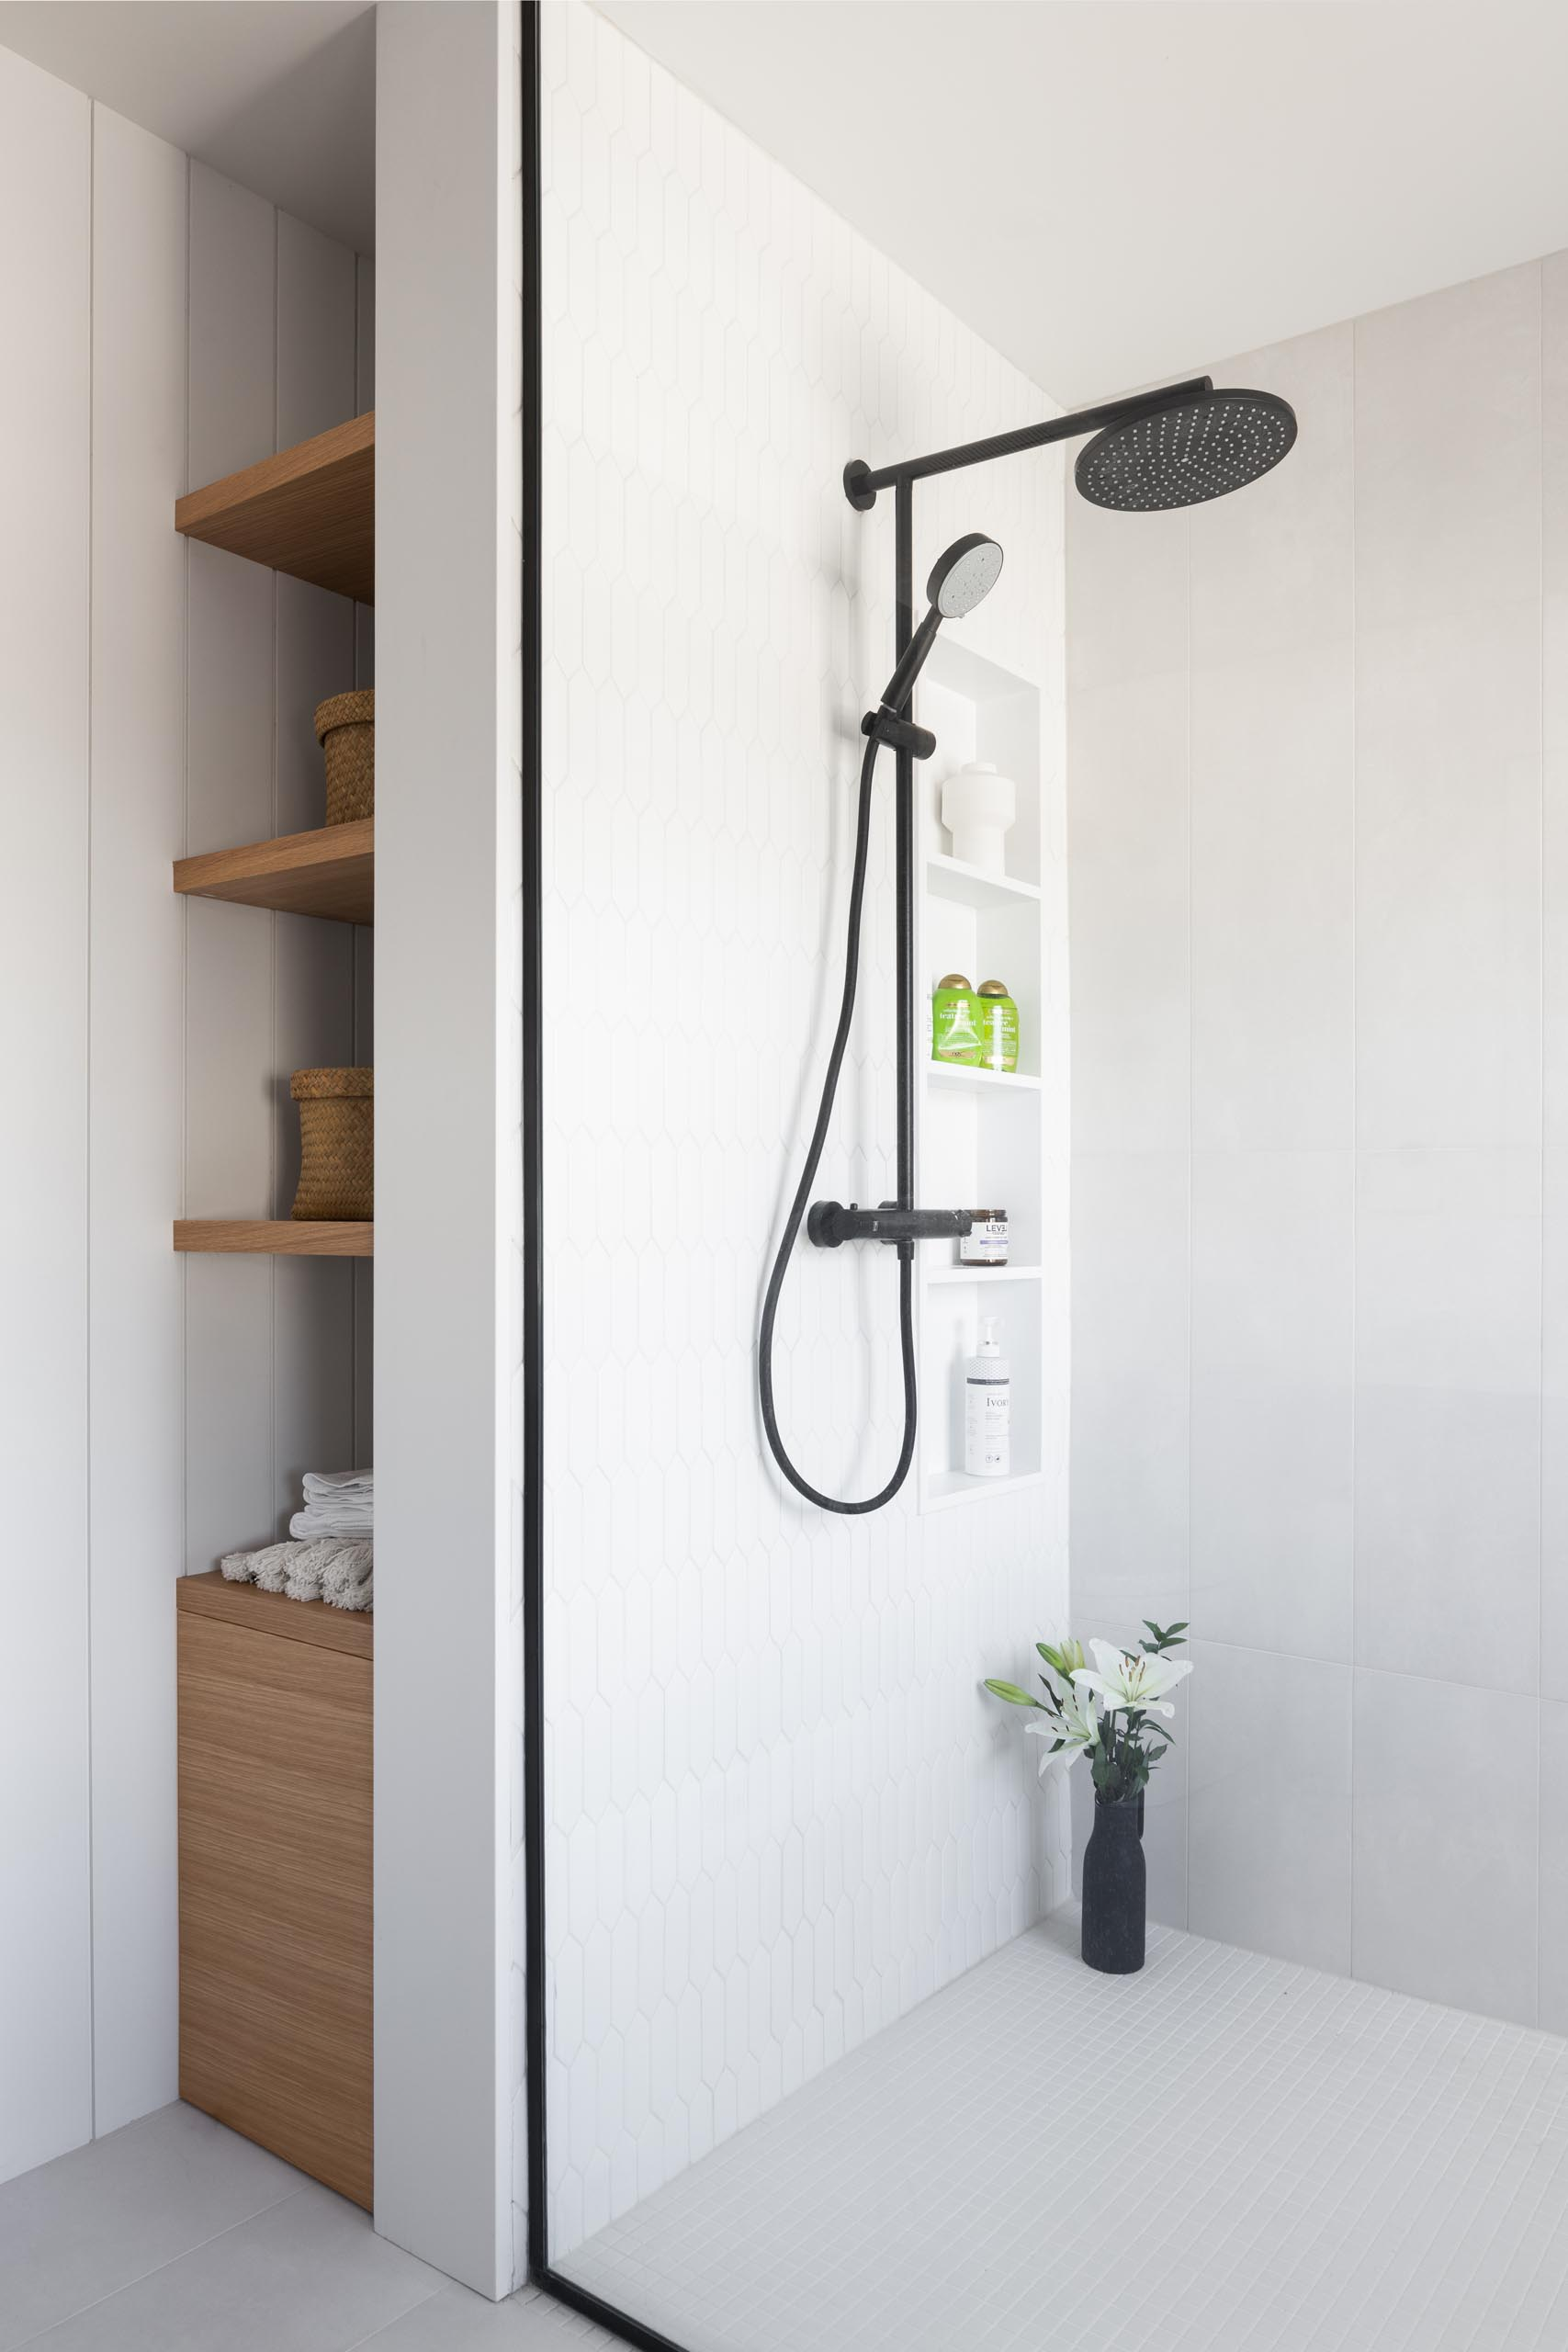 A modern bathroom with white picket-style tiles, a shelving niche, and built-in wood shelves.